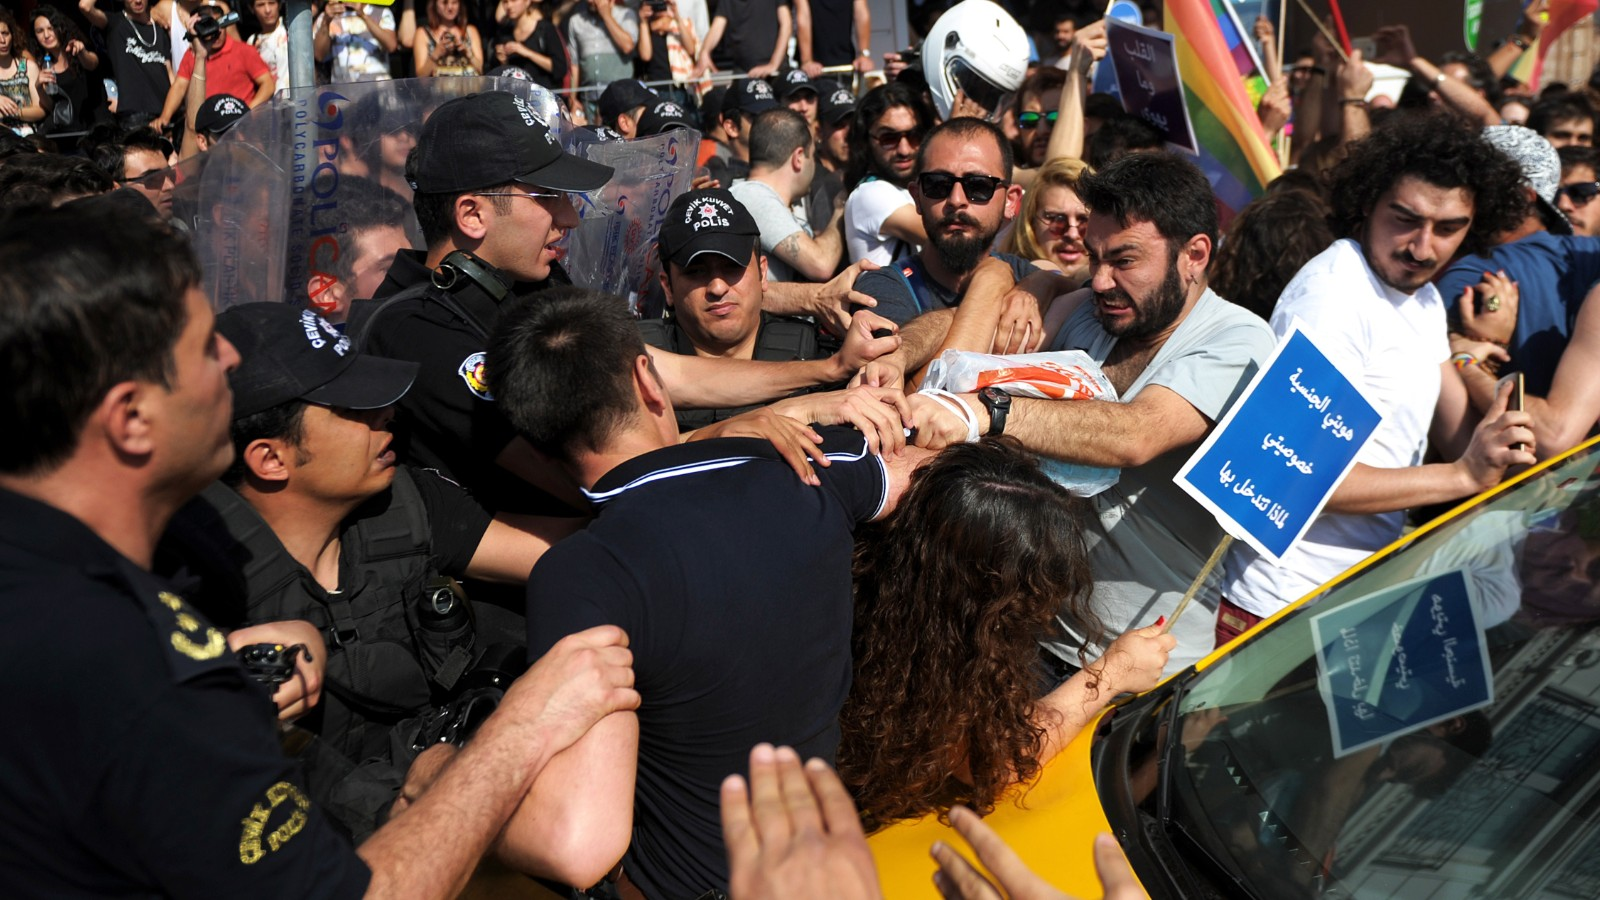 Gay pride parade obstructed by Turkish police